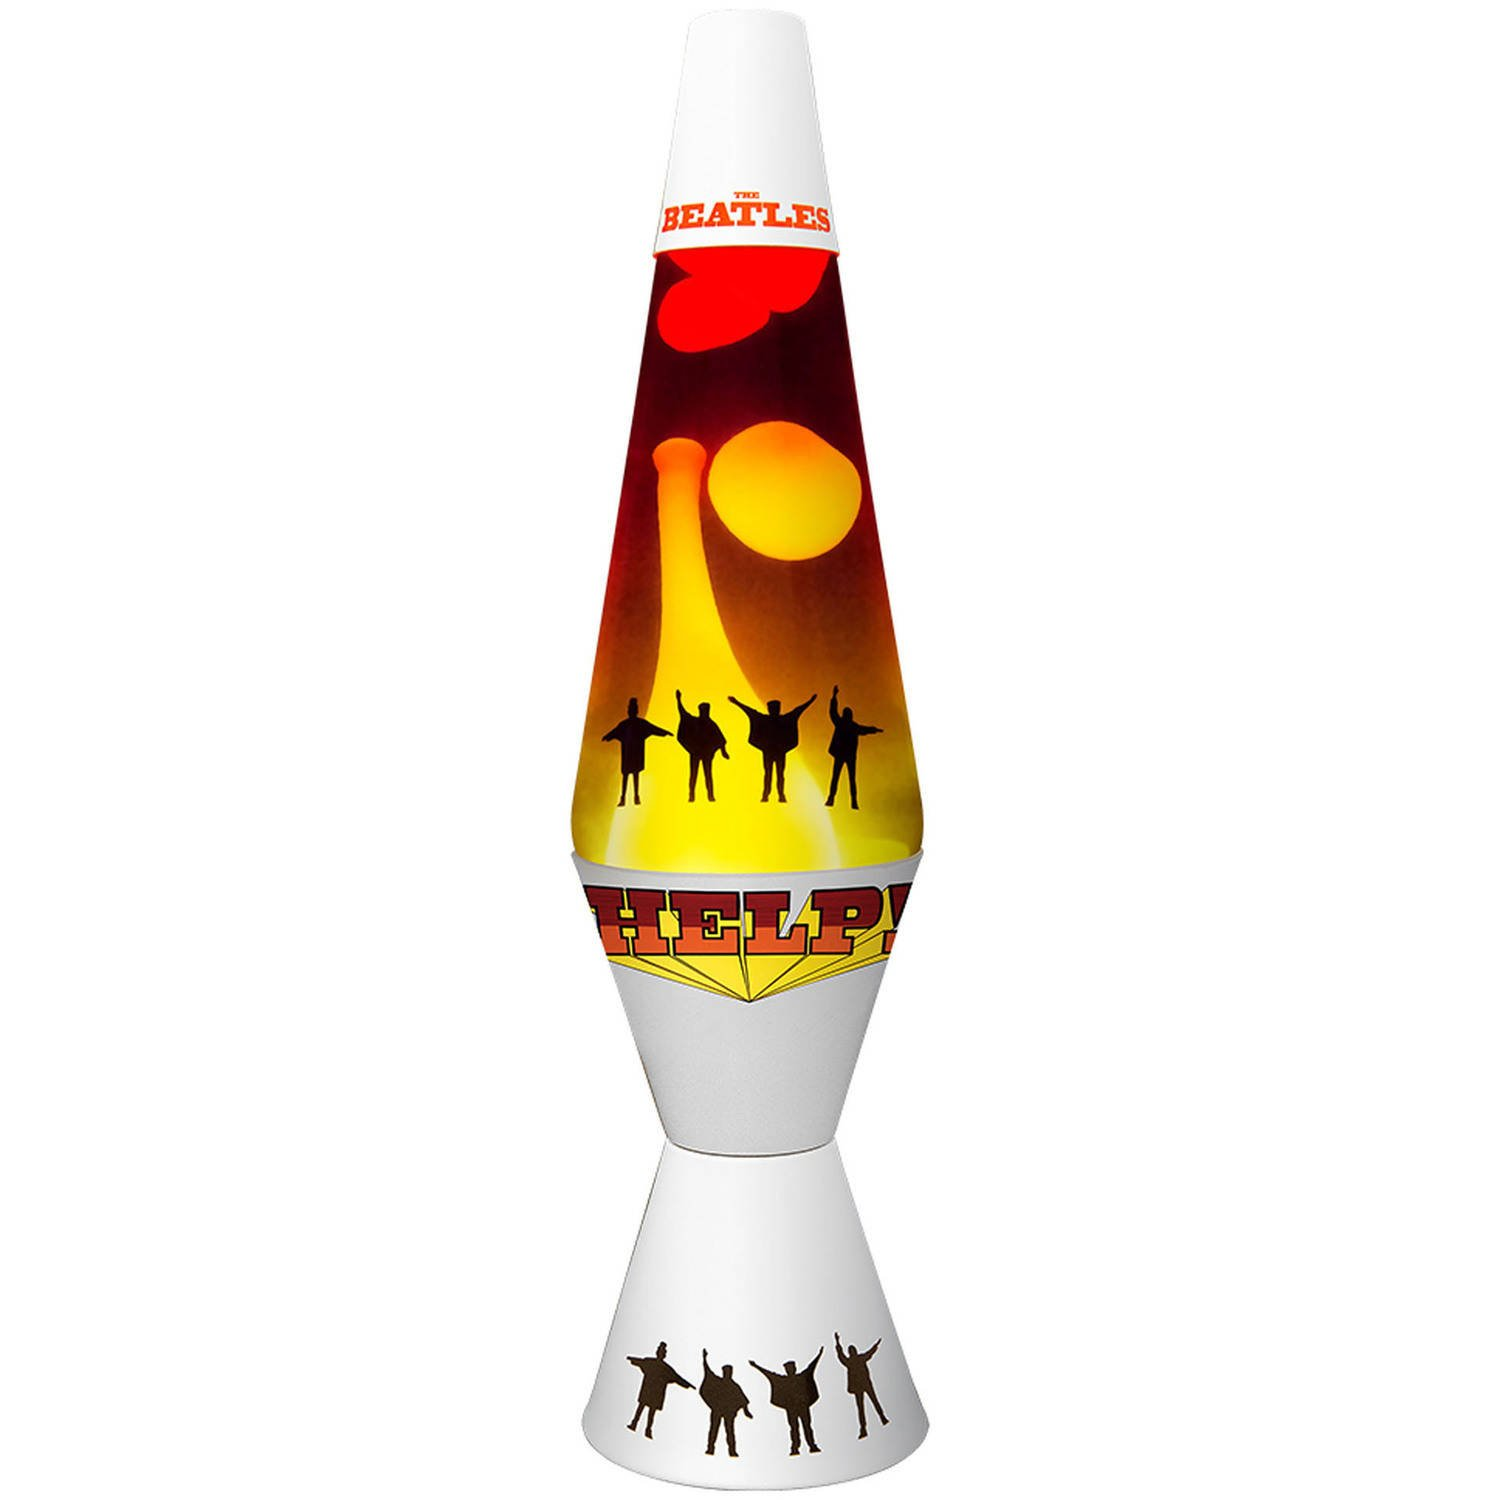 Lava Lamp The Beatles Lamp - Sea of Holes: Amazon.co.uk: Lighting